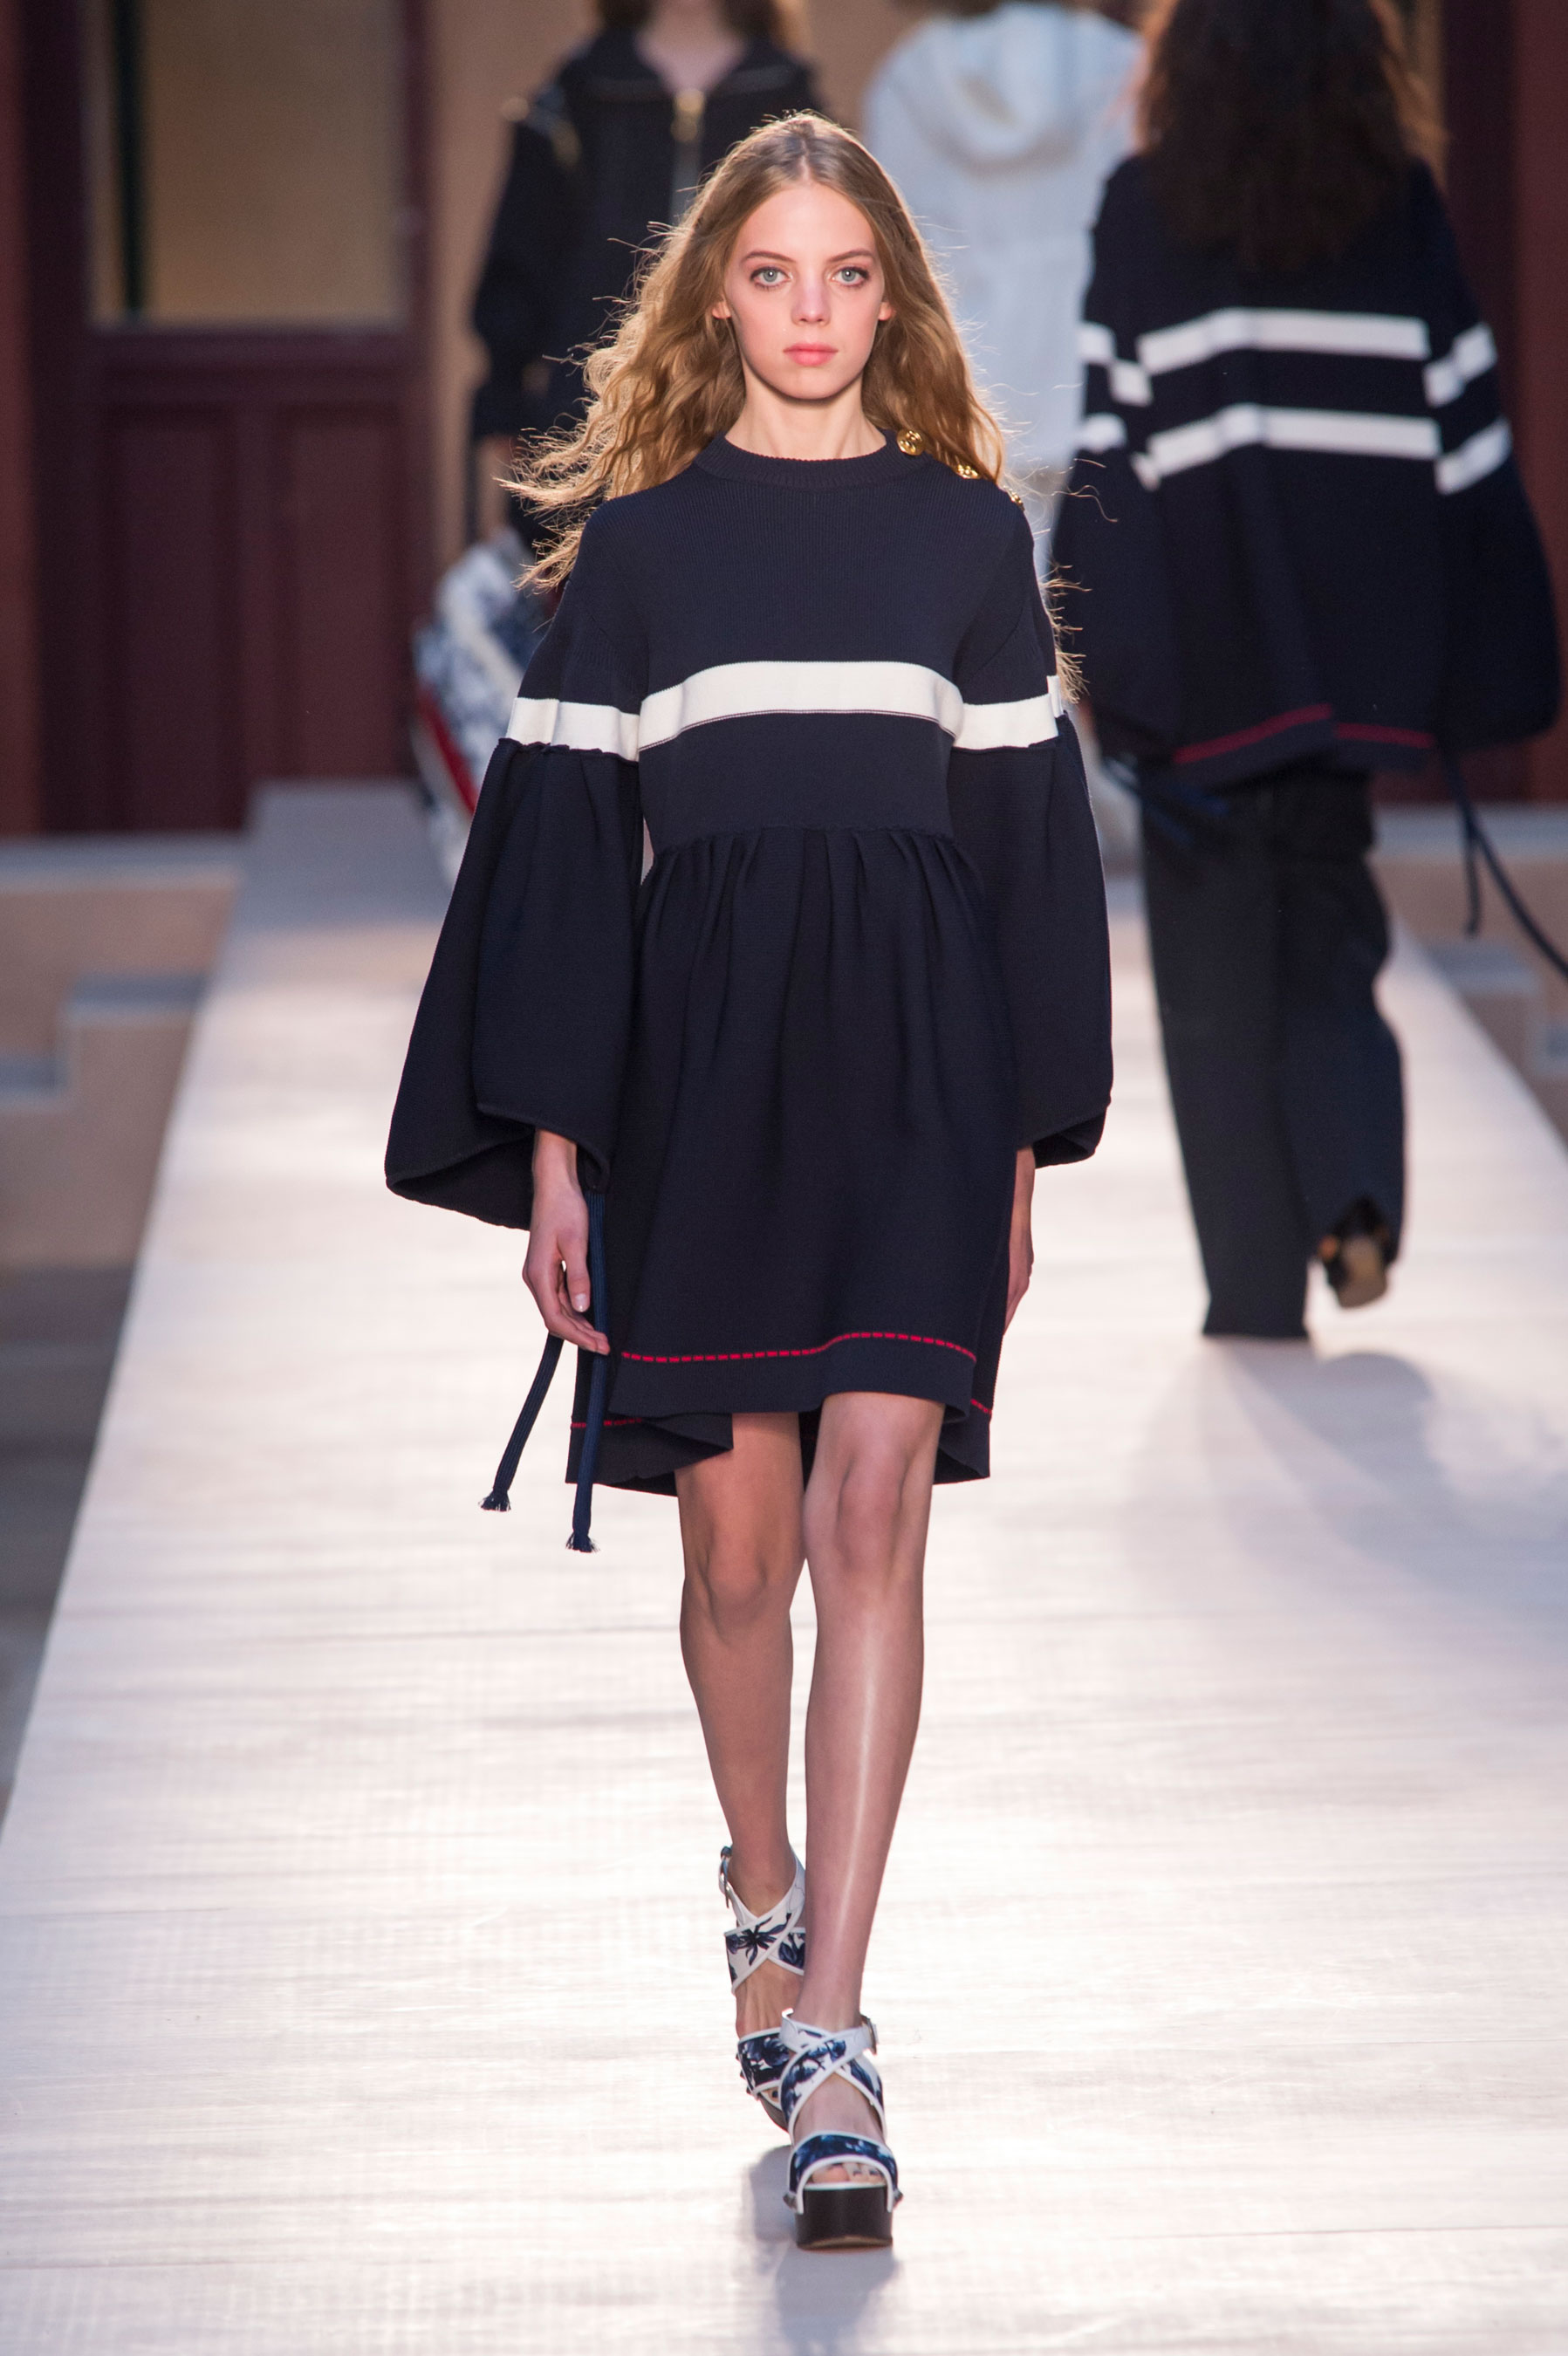 Mariana Zaragoza walking for Sonia Rykiel Spring 2017